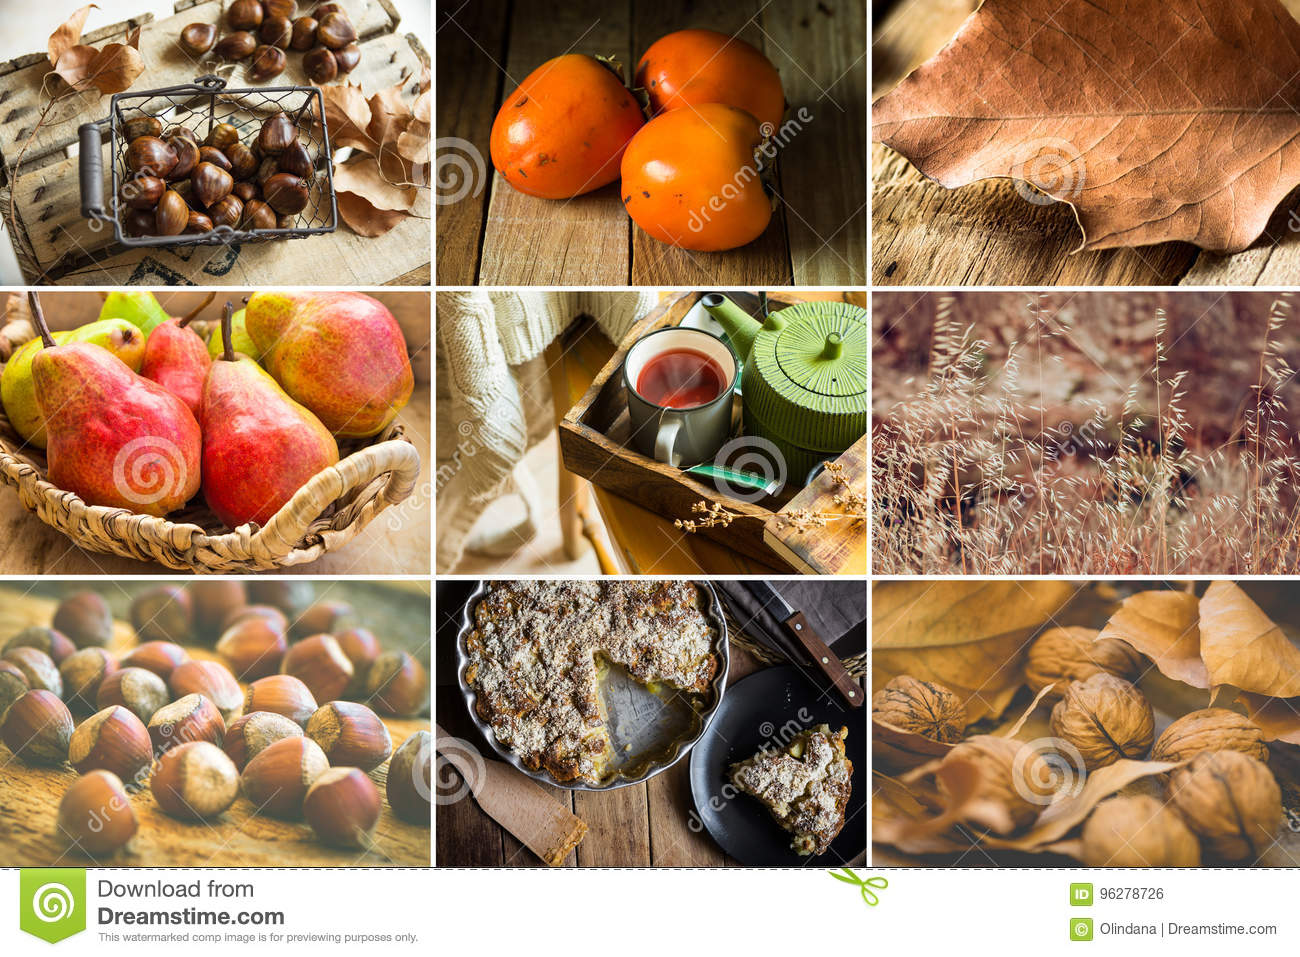 Download Photo Collage Nine Square Images, Autumn, Fall, Hazelnuts, Walnuts, Persimmons, Pears, Chestnuts, Apple Pie, Fruit Tea, Book, Dry Stock Photo - Image of atmosphere, book: 96278726